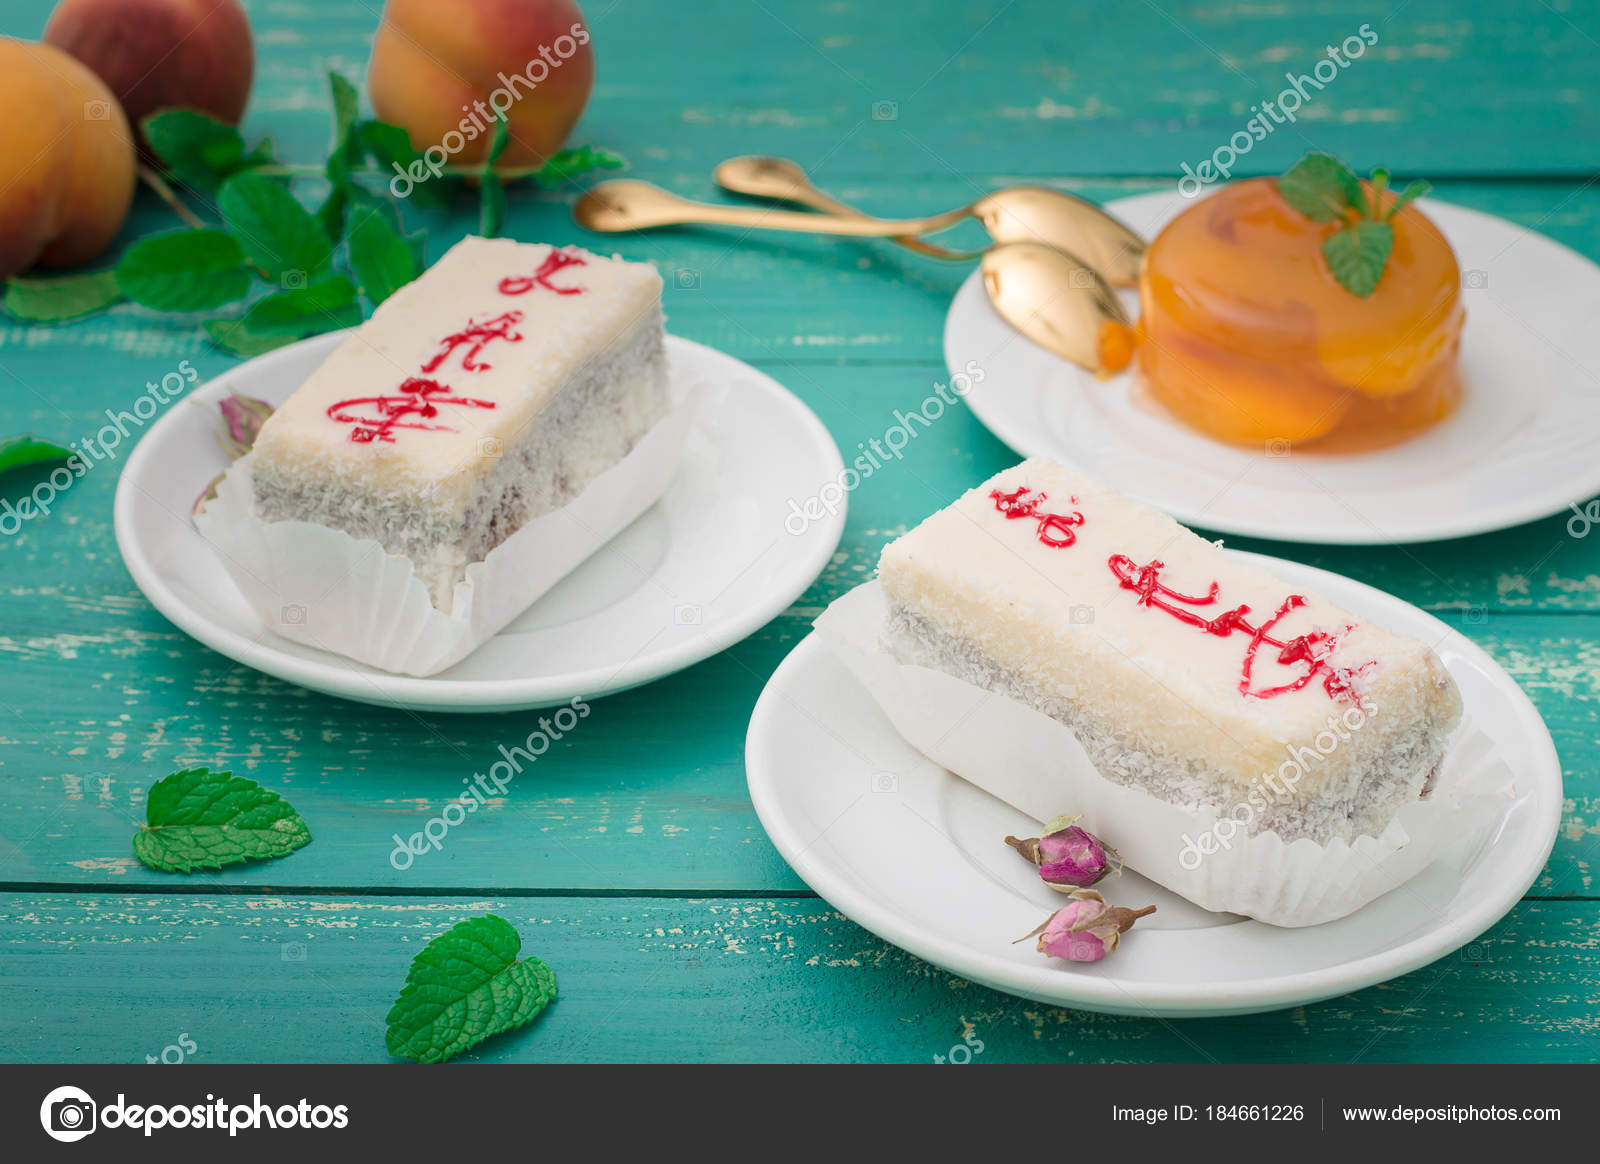 Kokoscreme Kuchen A Fresh Piece Of Coconut Cream Cake On A White Plate With A